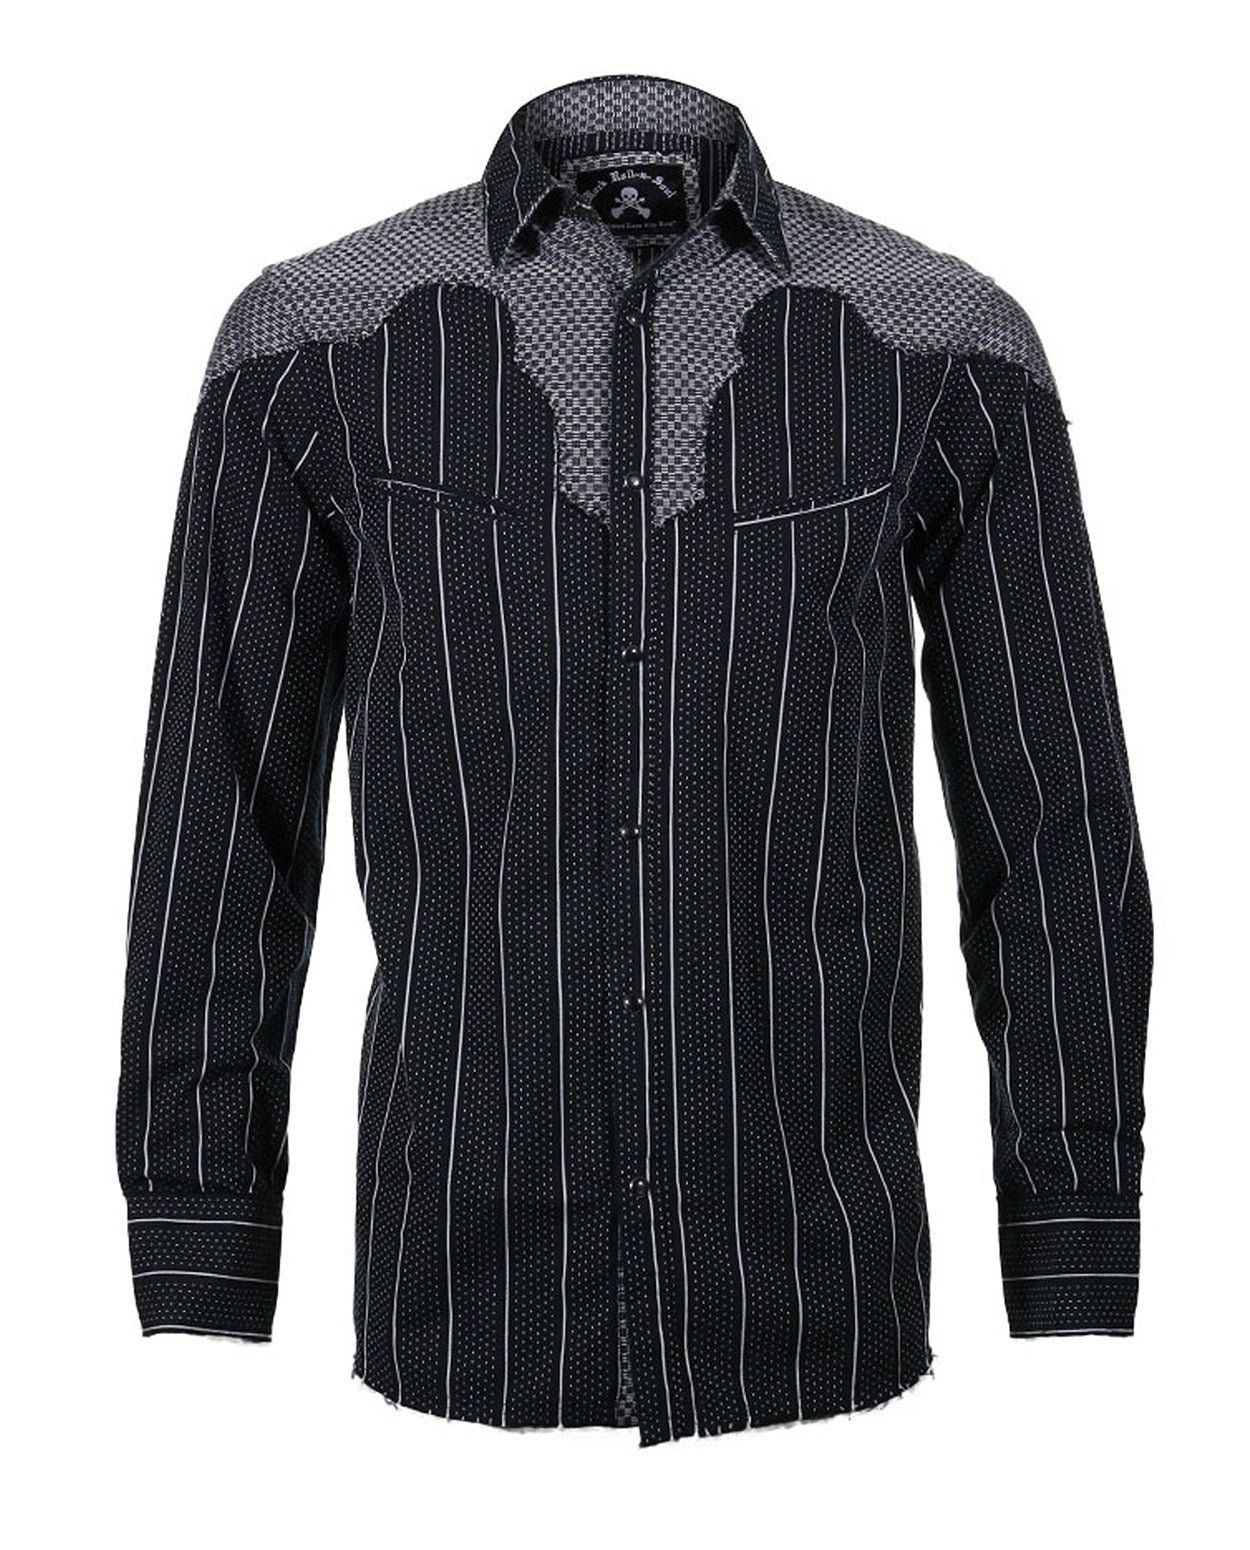 Men's Western Button Up Shirt - Western County Bars  Black by Rock Roll n Soul